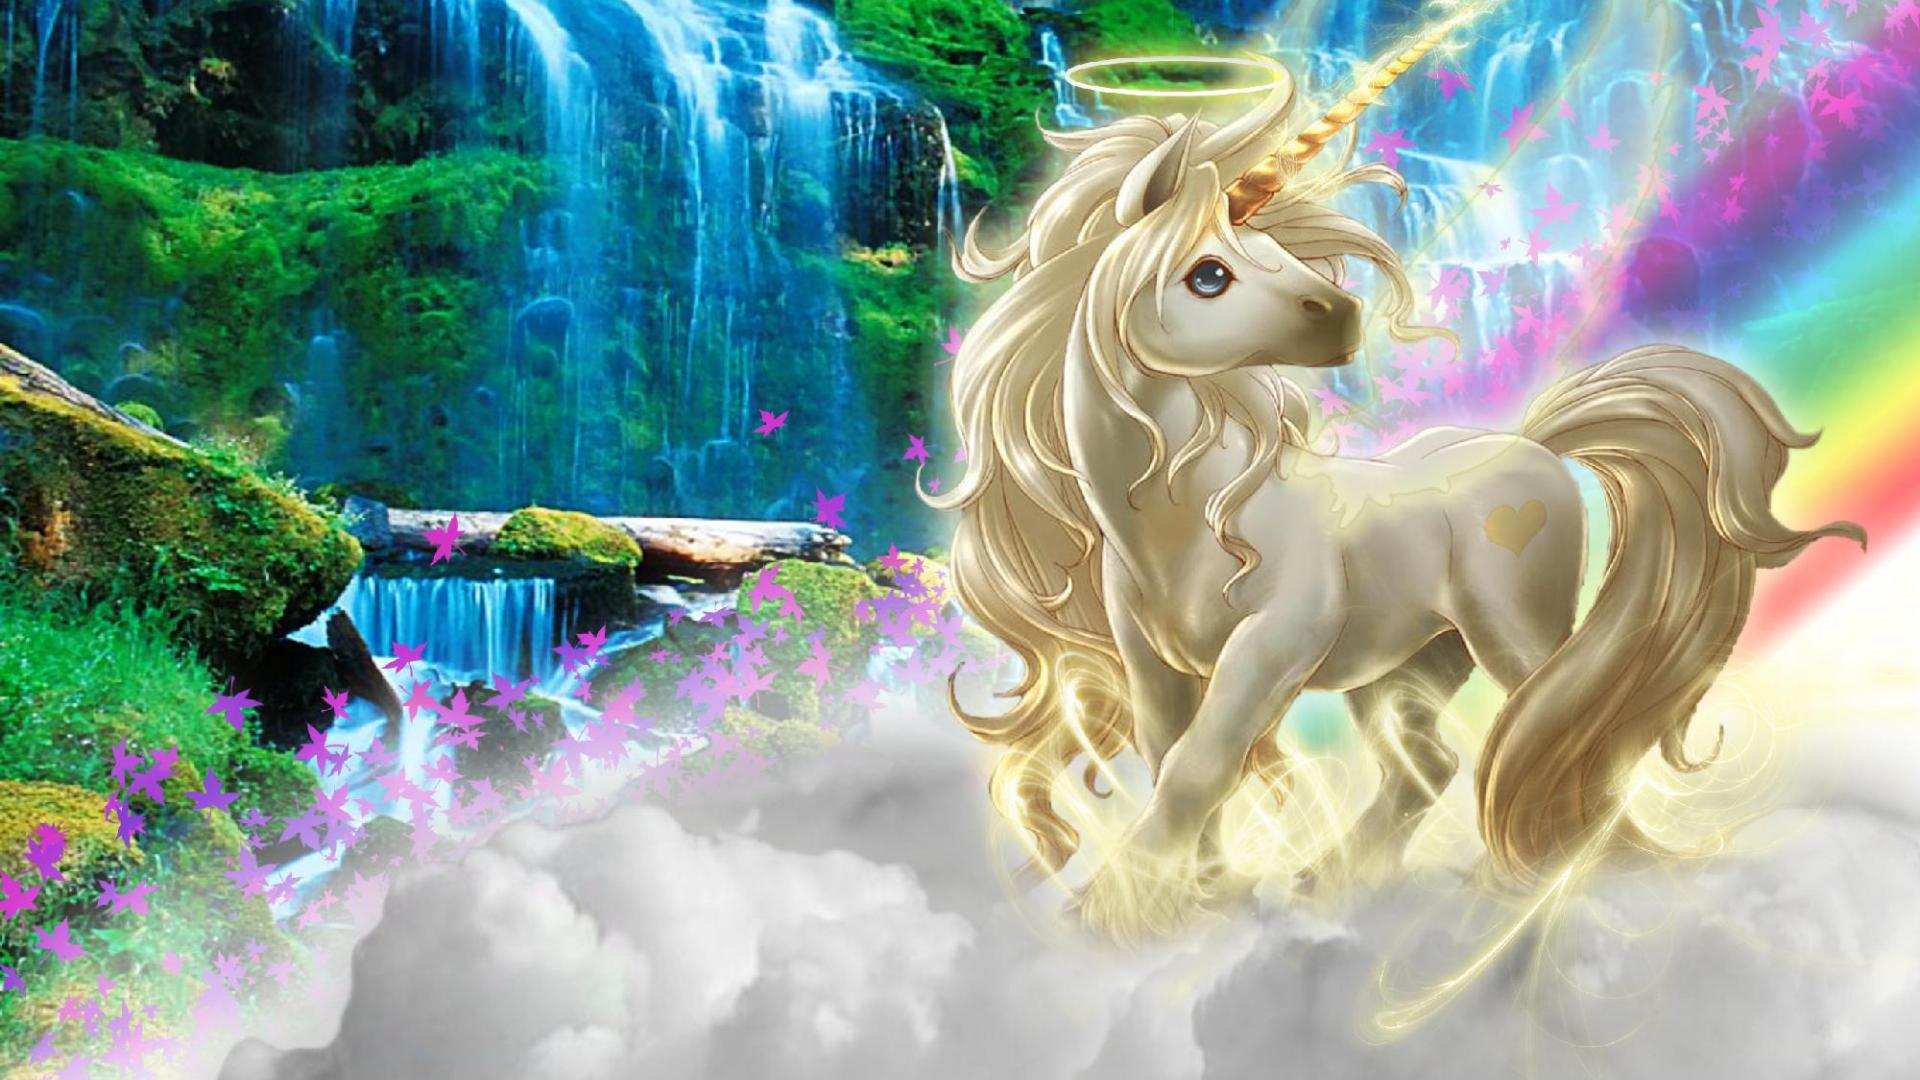 Fantasy unicorn wallpaper high definition high quality widescreen fantasy unicorn wallpaper fantasy unicorn voltagebd Images